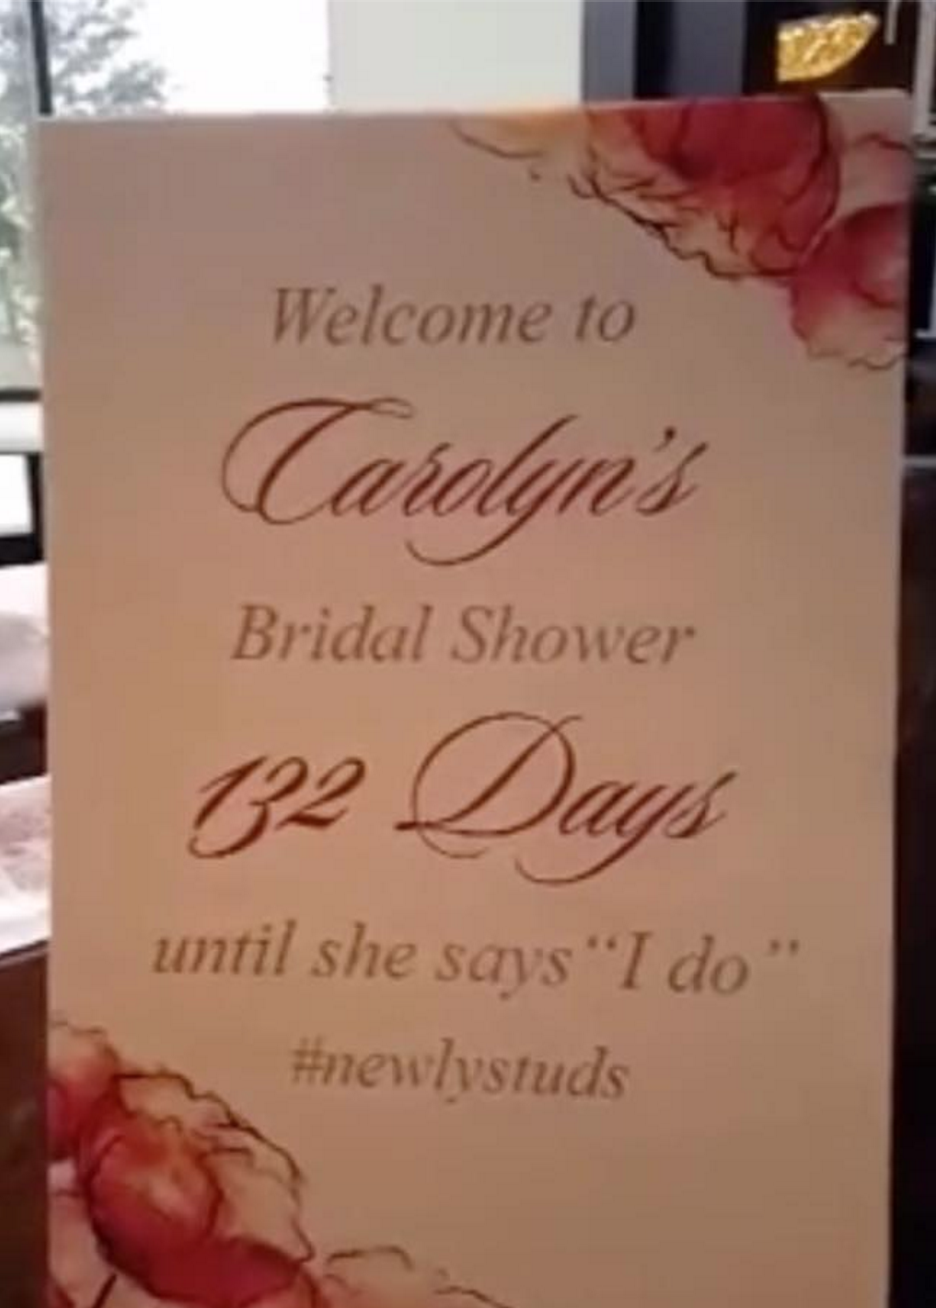 Bridal Shower2